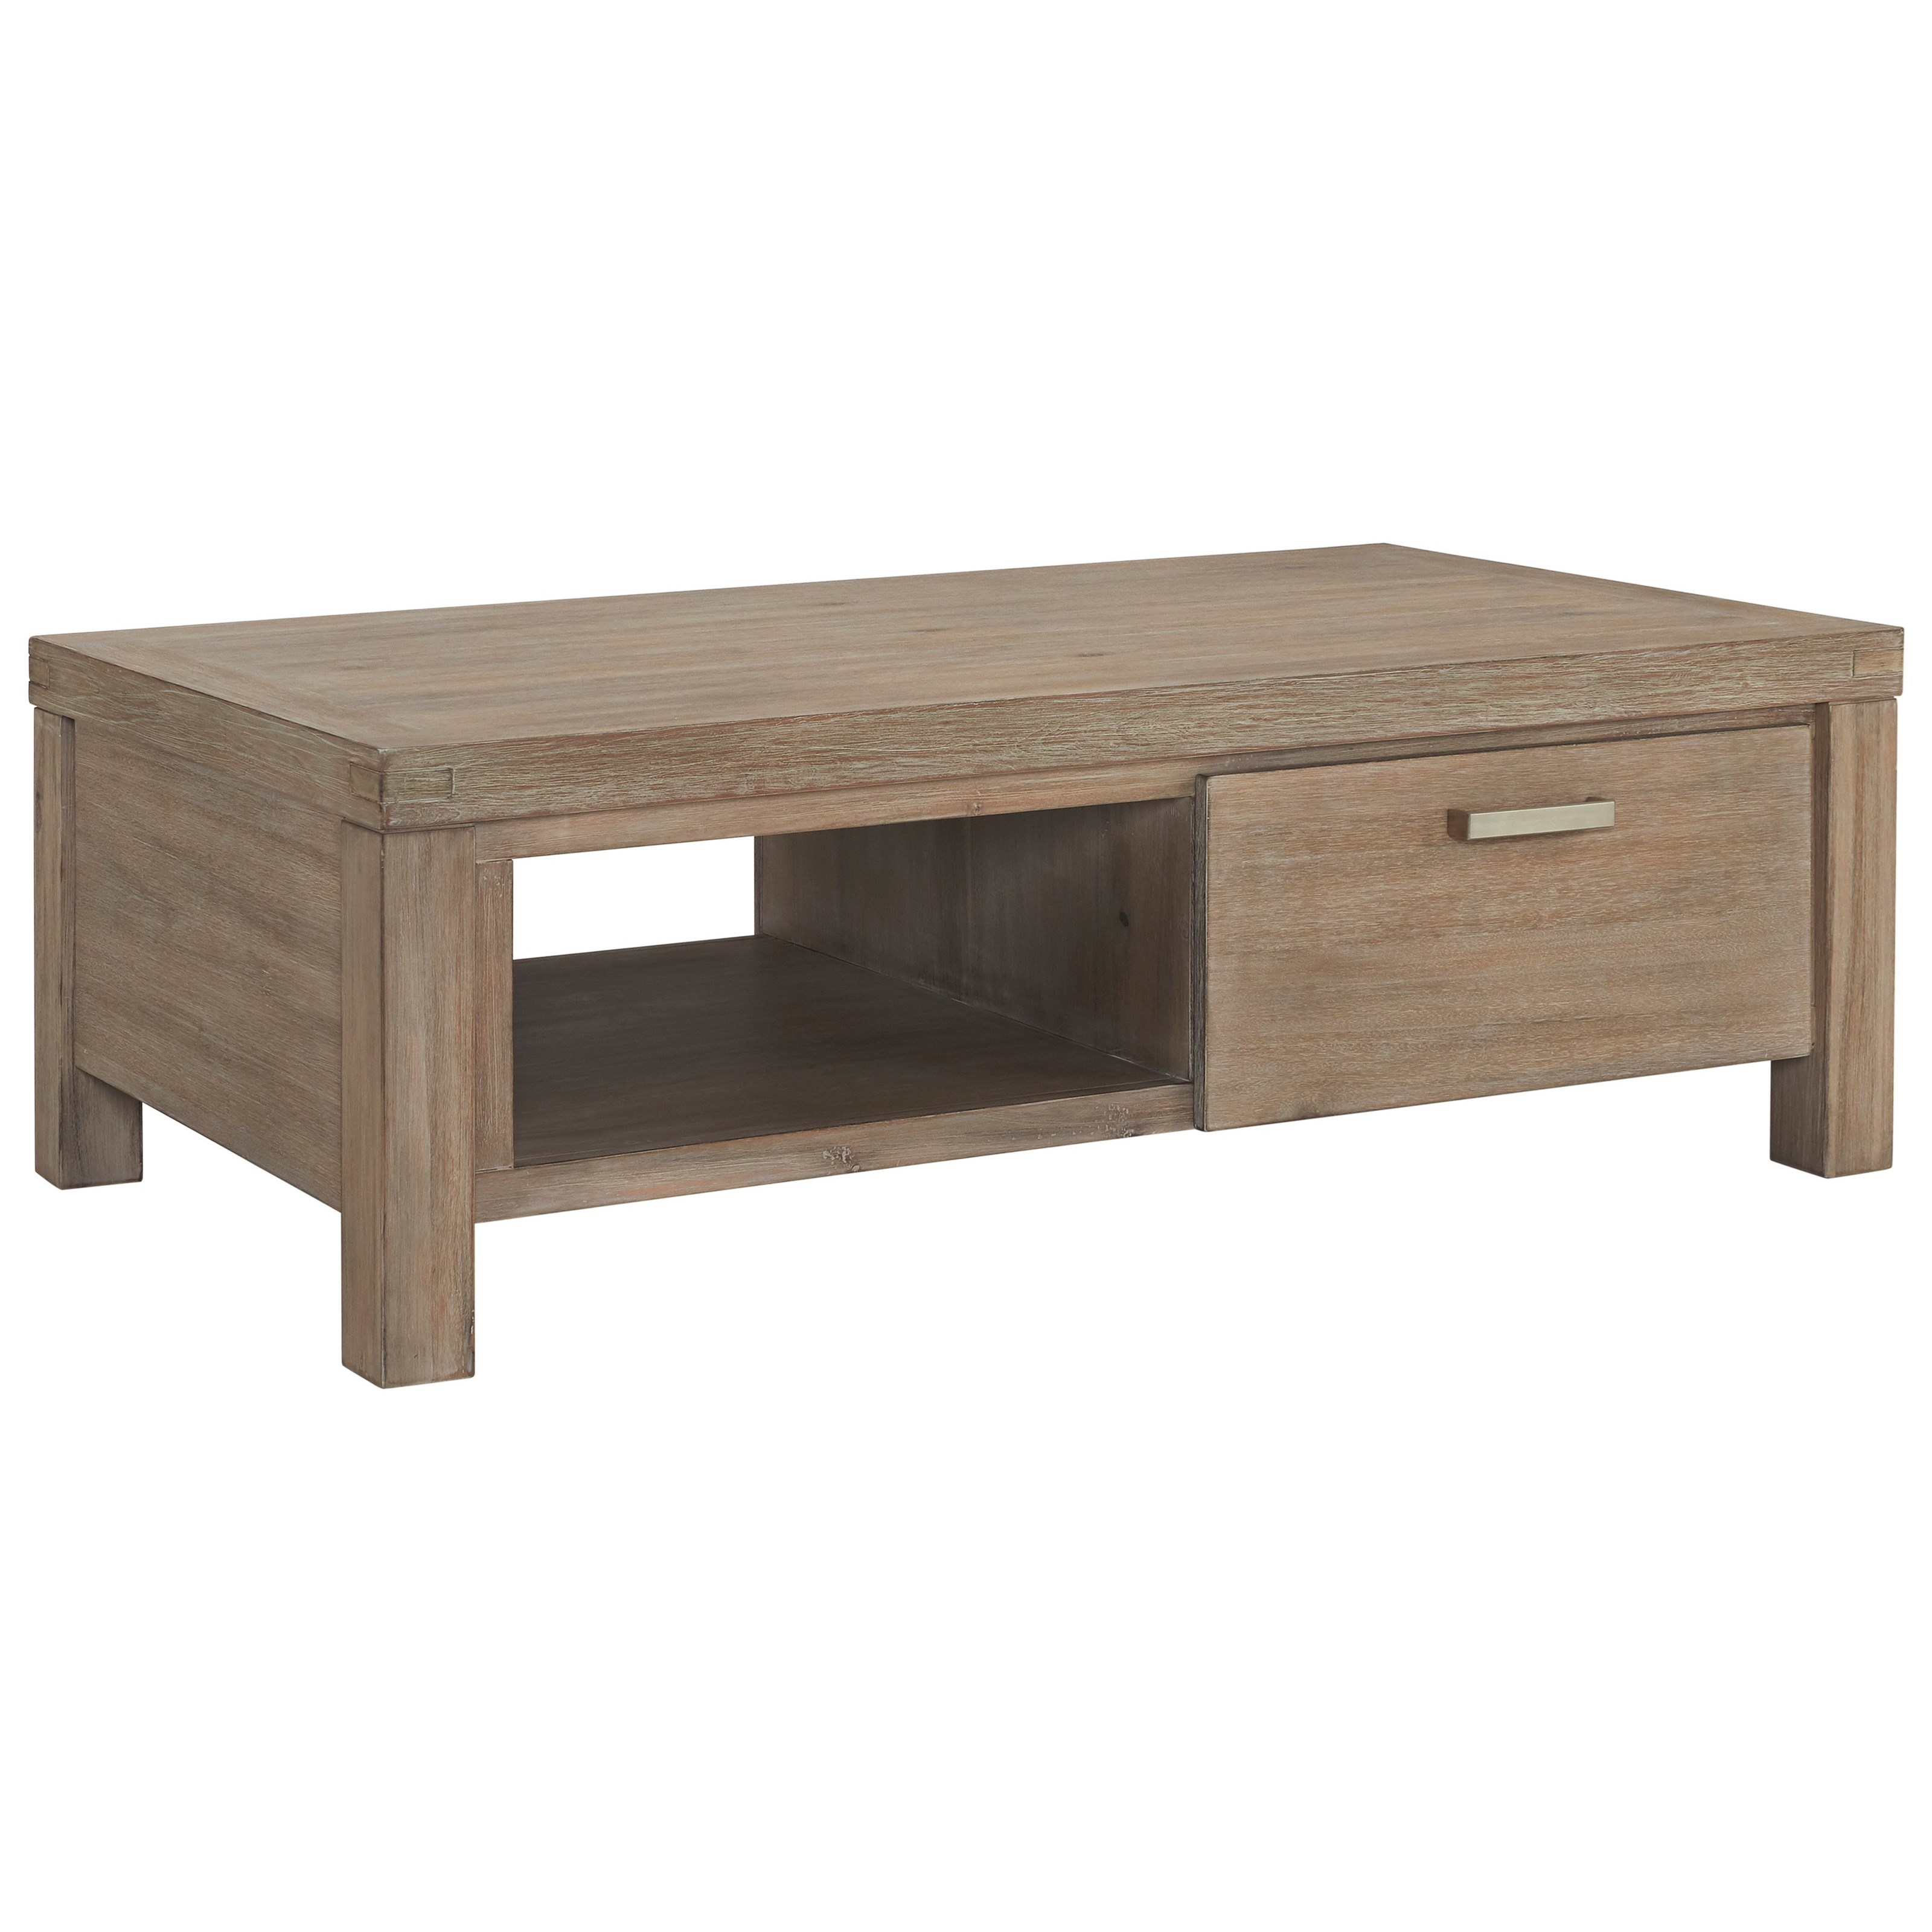 Ambrosh Cocktail Table by Ashley Furniture at HomeWorld Furniture